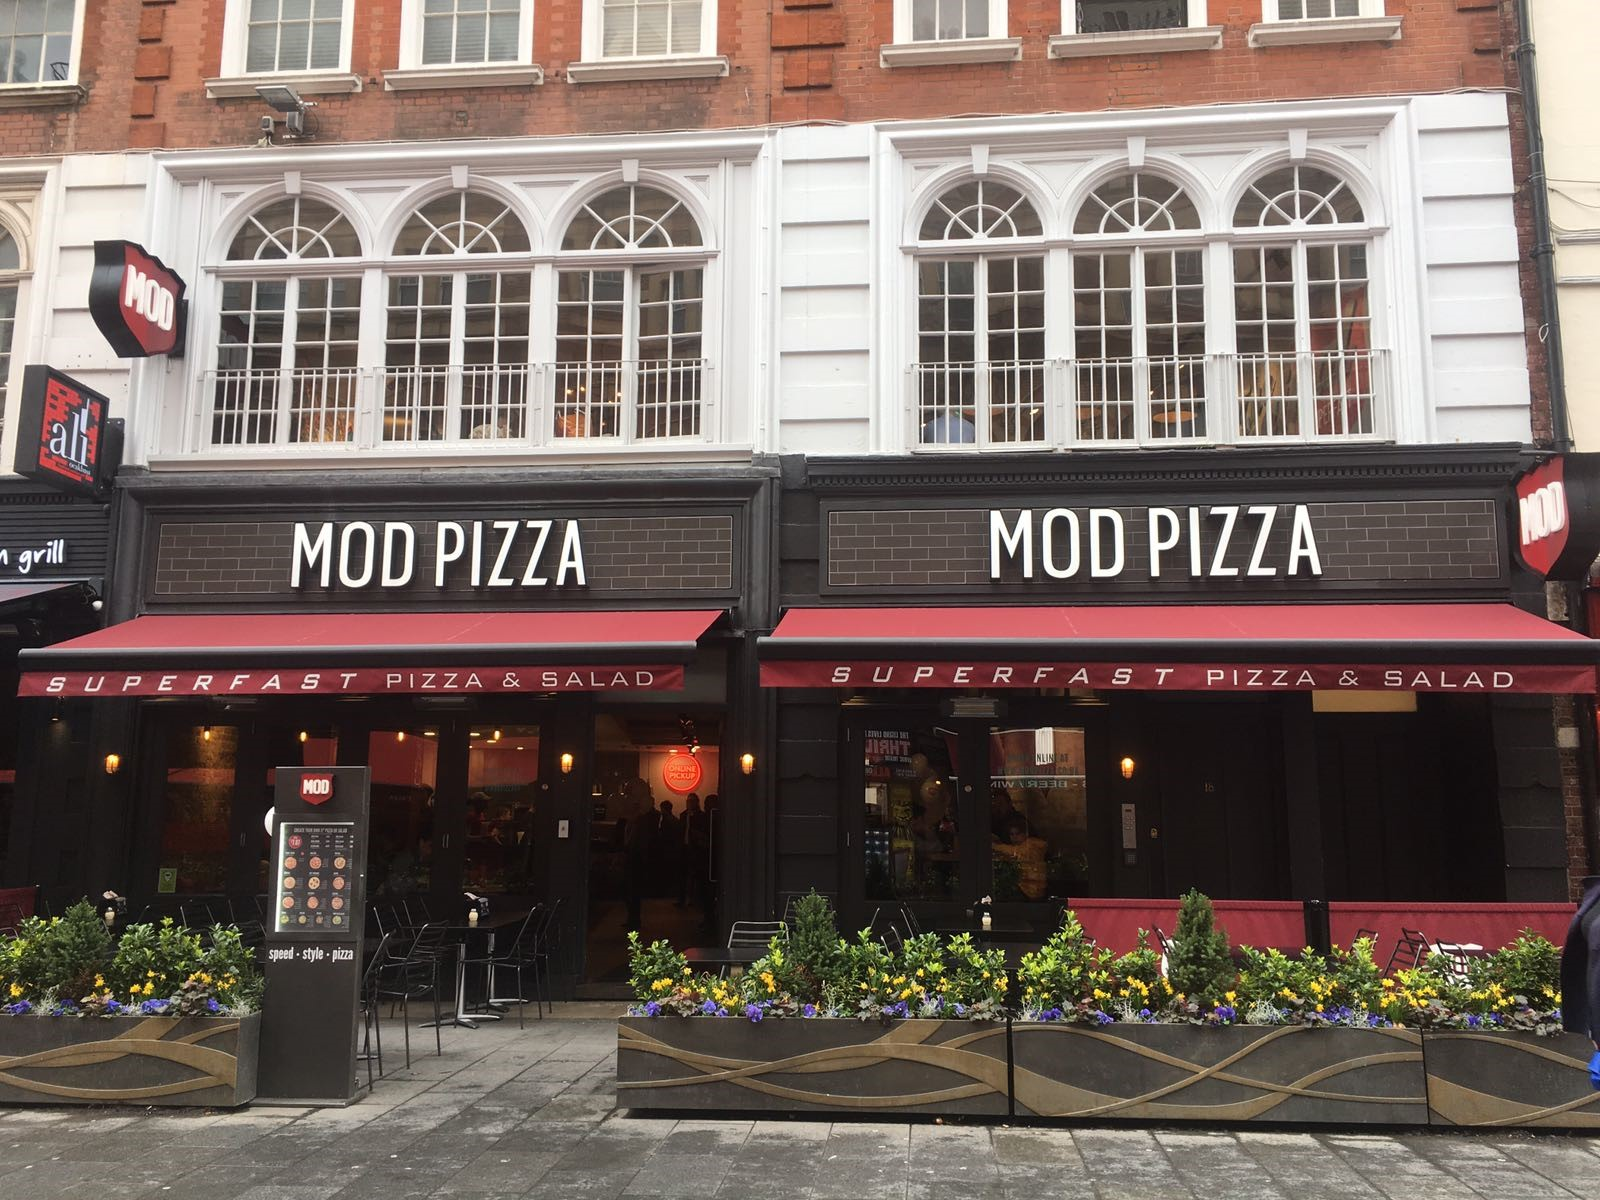 Mod Pizza West End Live Leicester Square